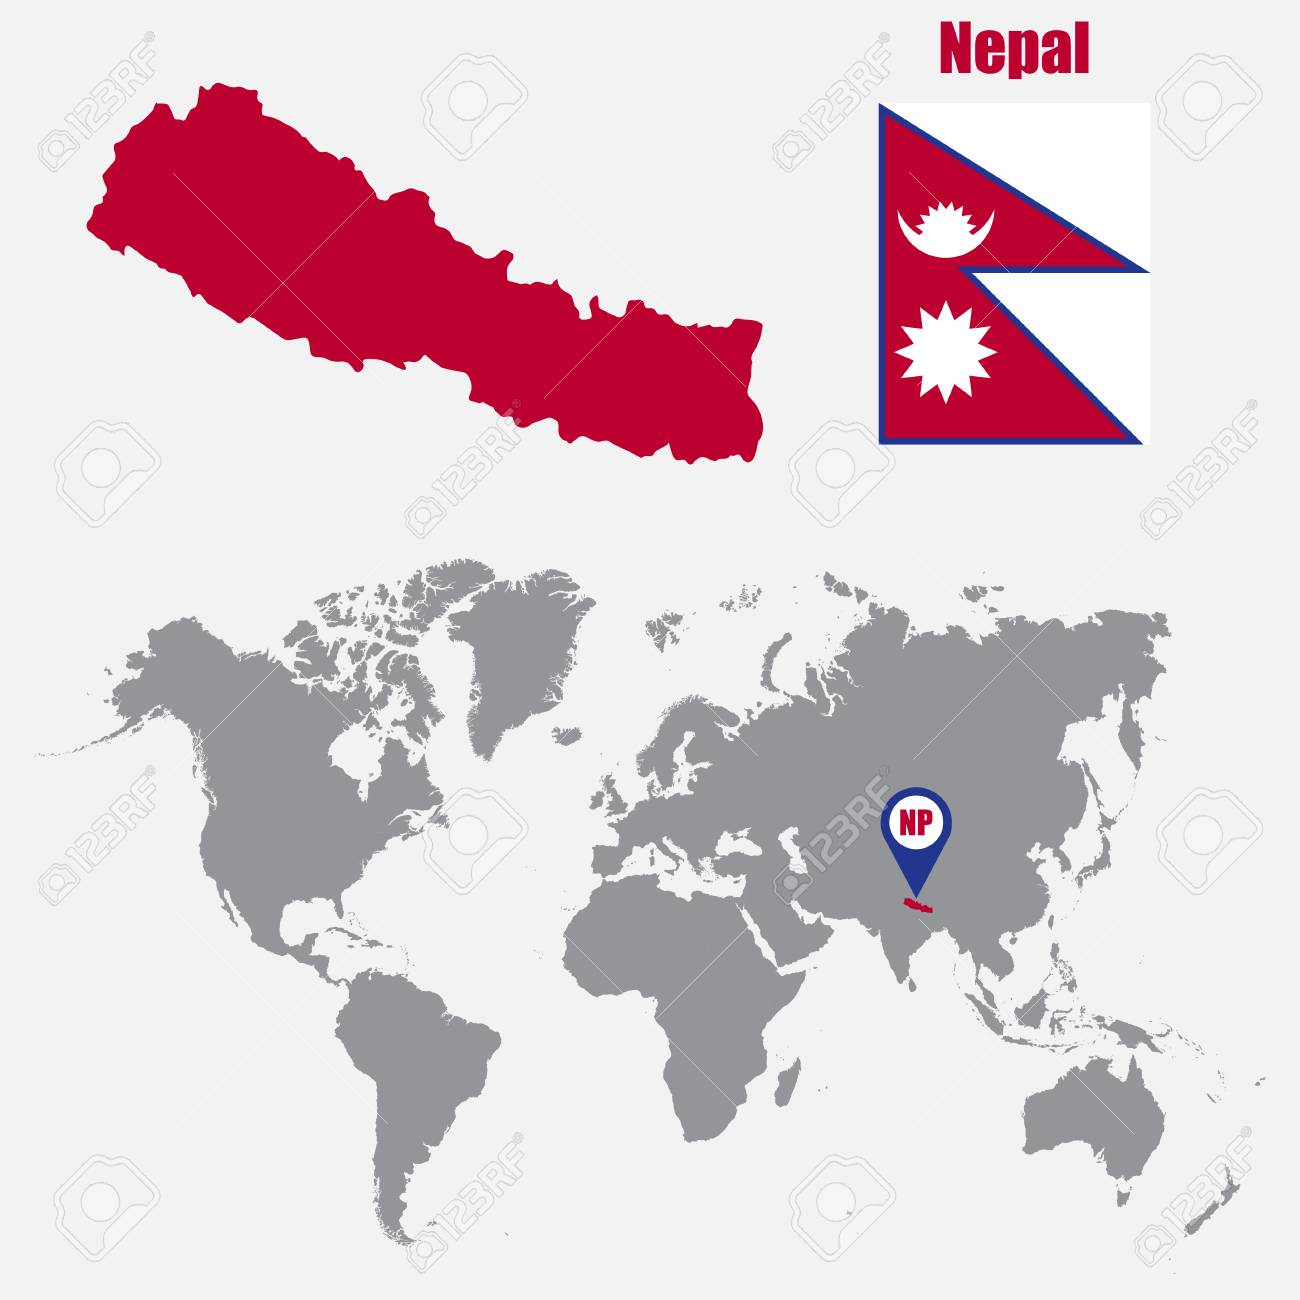 népal carte du monde Nepal Map On A World Map With Flag And Map Pointer. Vector